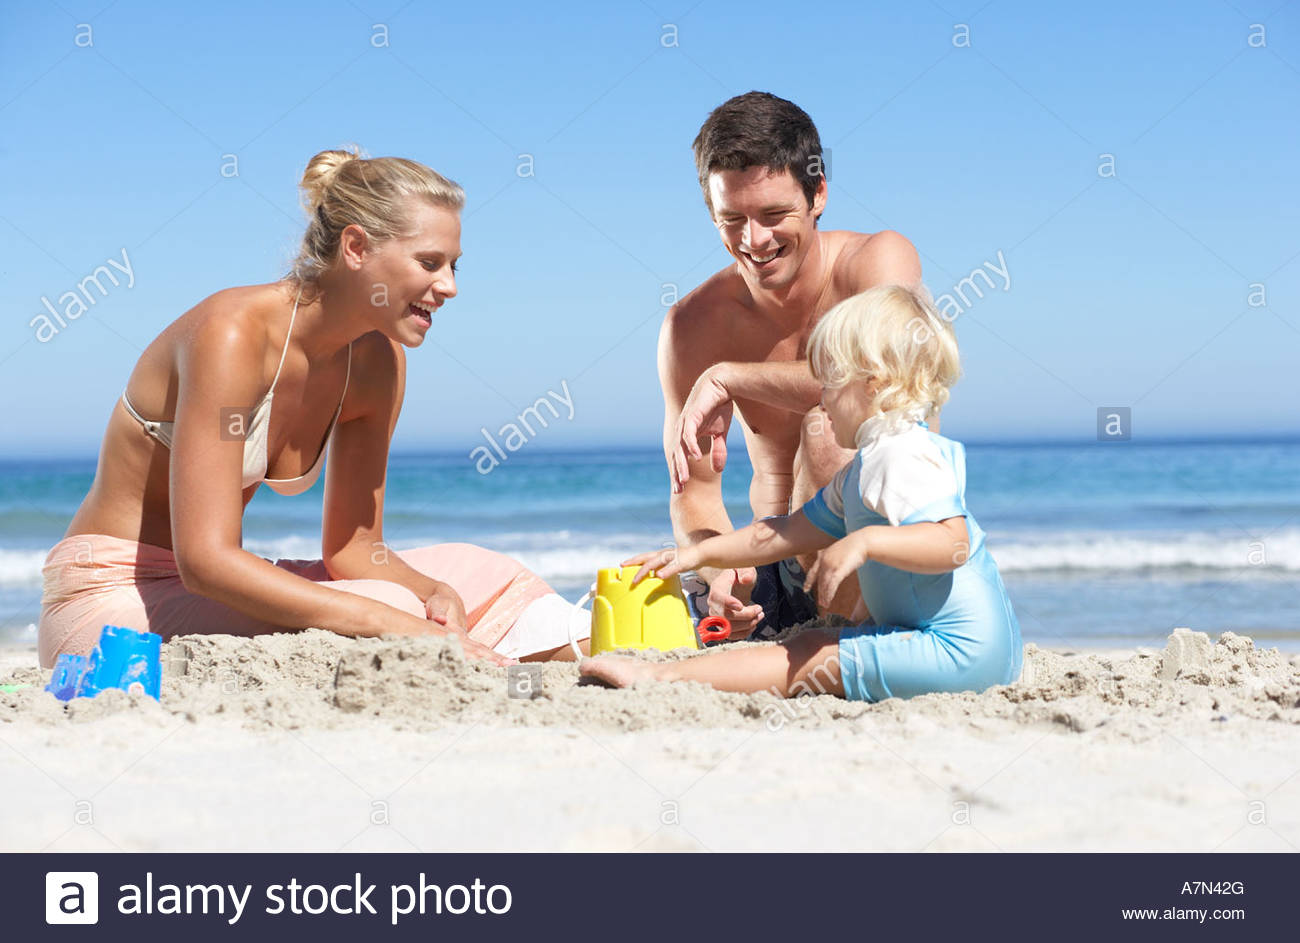 Two generation family building sandcastles on sandy beach smiling Stock Photo